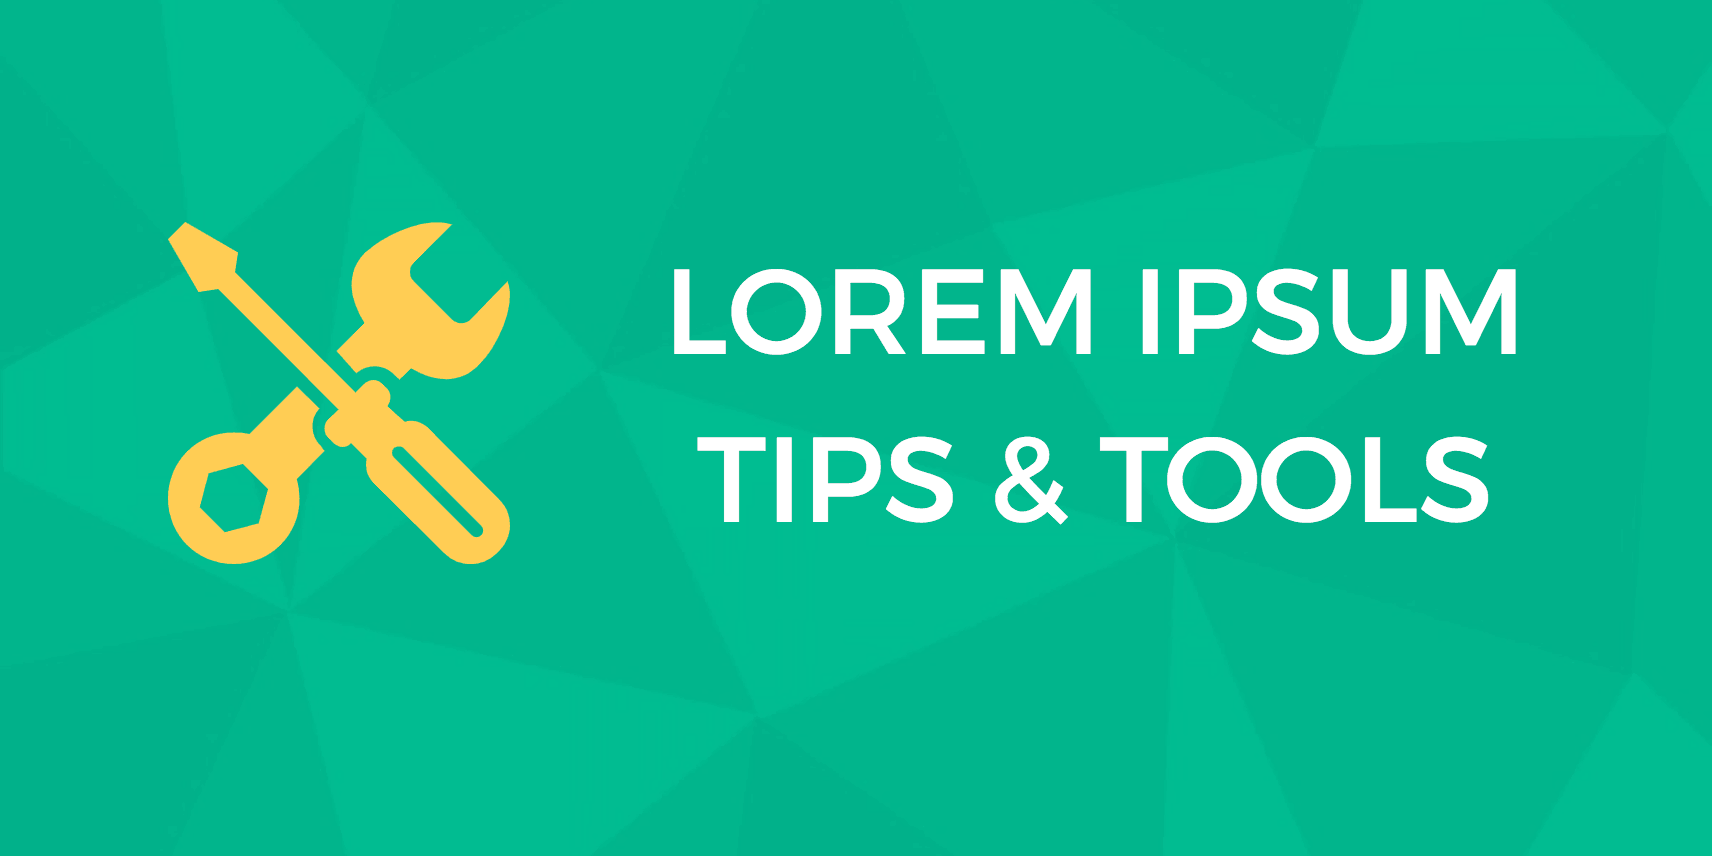 Lorem Ipsum Generators: The 14 Best - Digital com